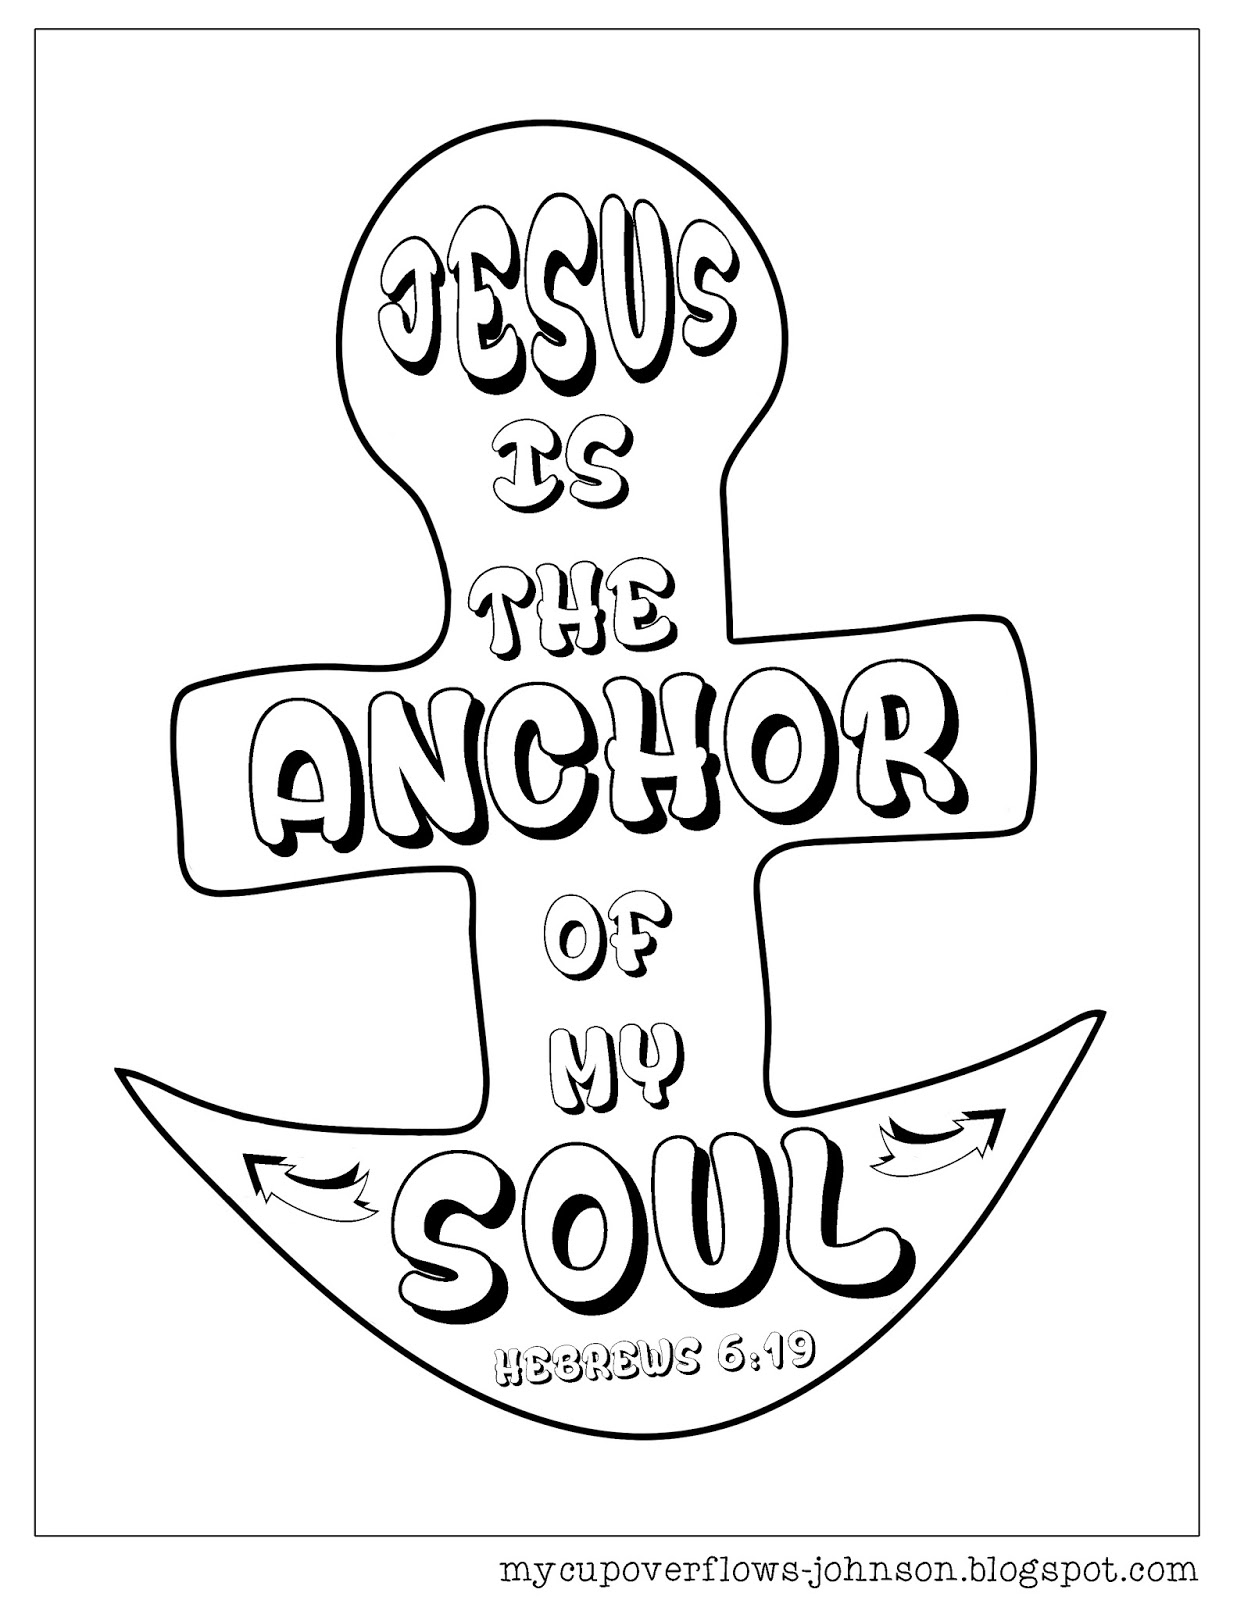 bible verse coloring sheets coloring page bible verse do not worry printable download bible verse coloring sheets